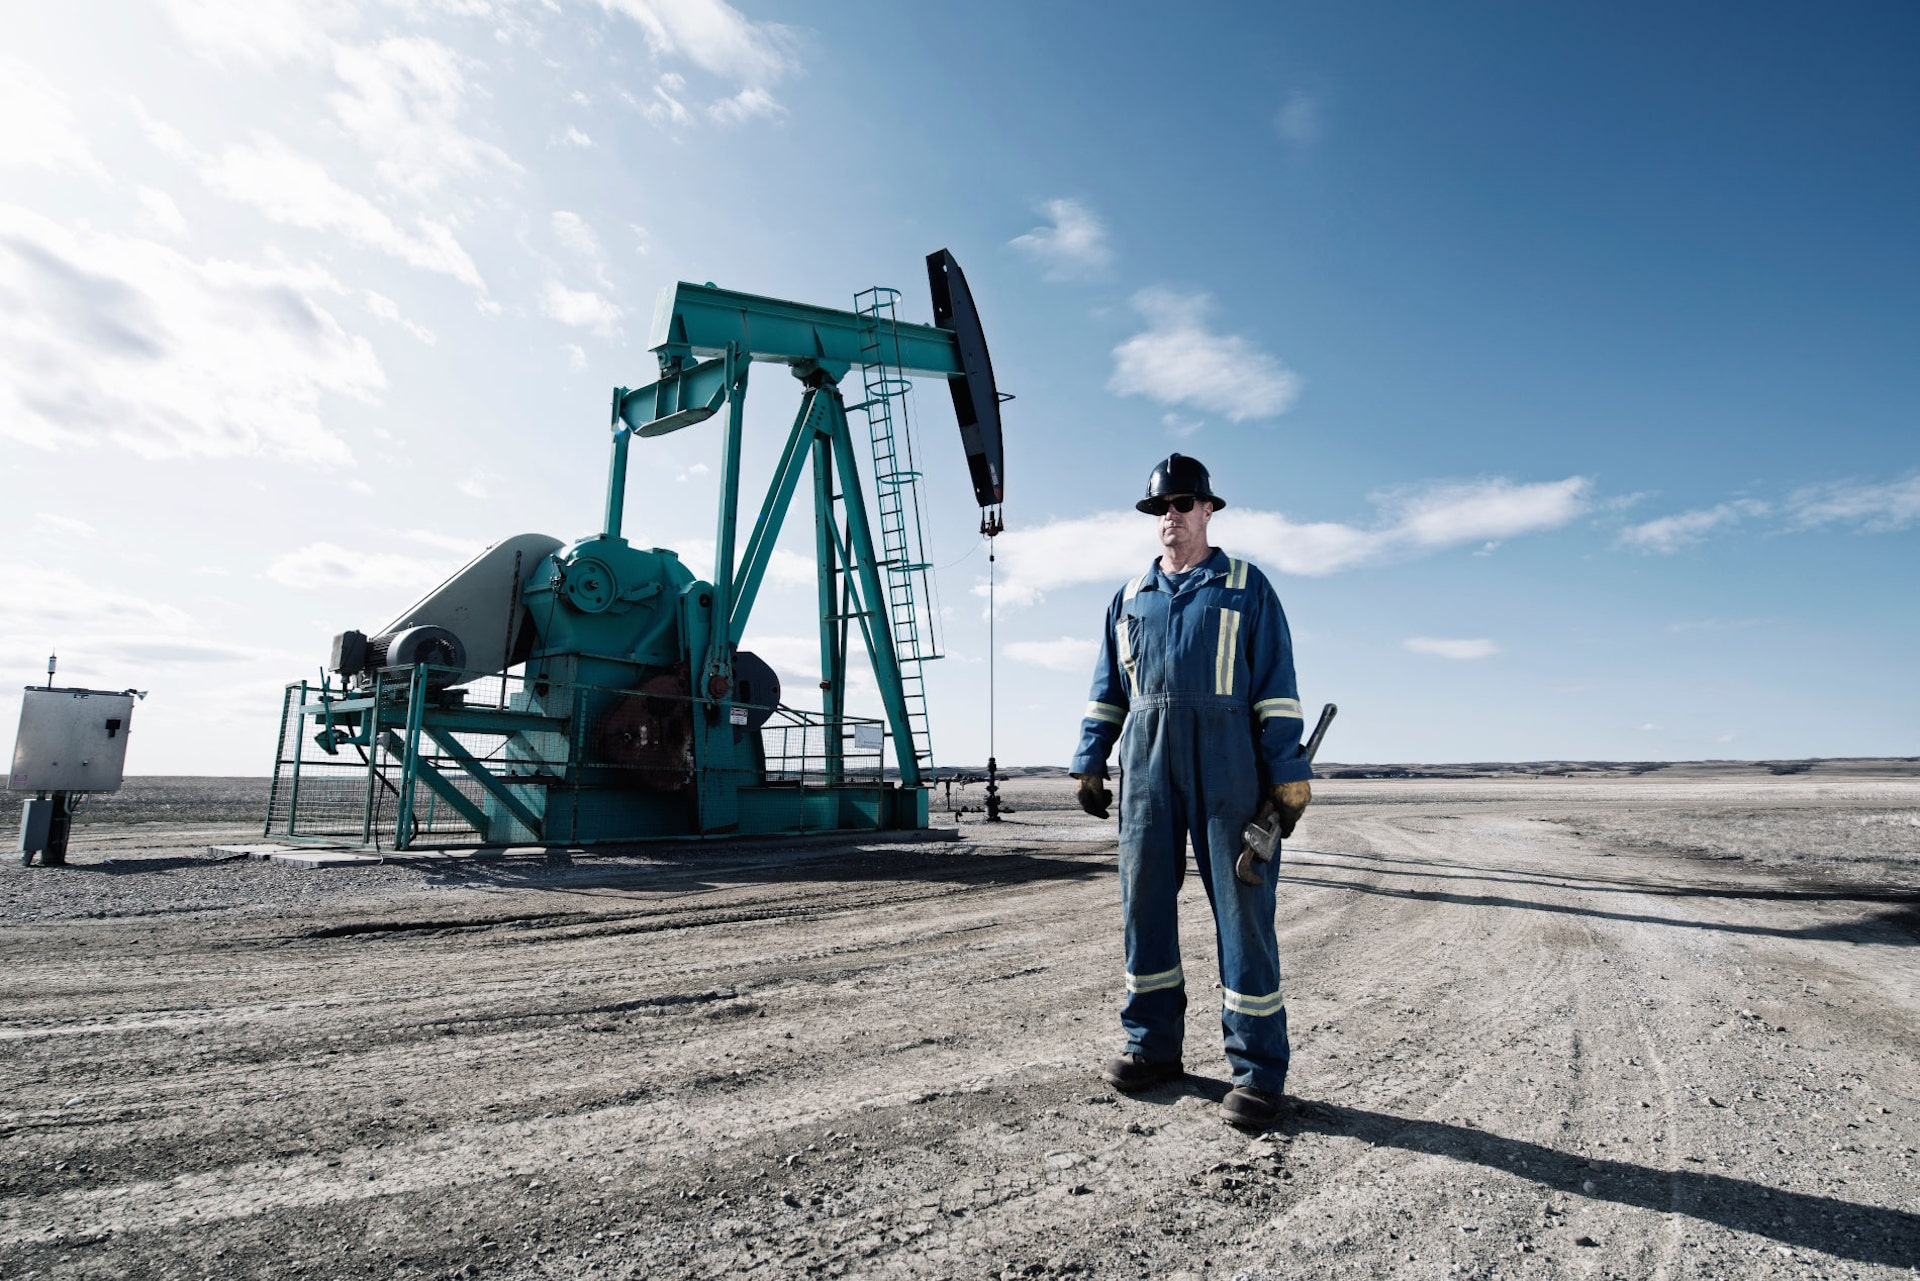 Oil Industry Worker With Safety Equipment - SolVibrations